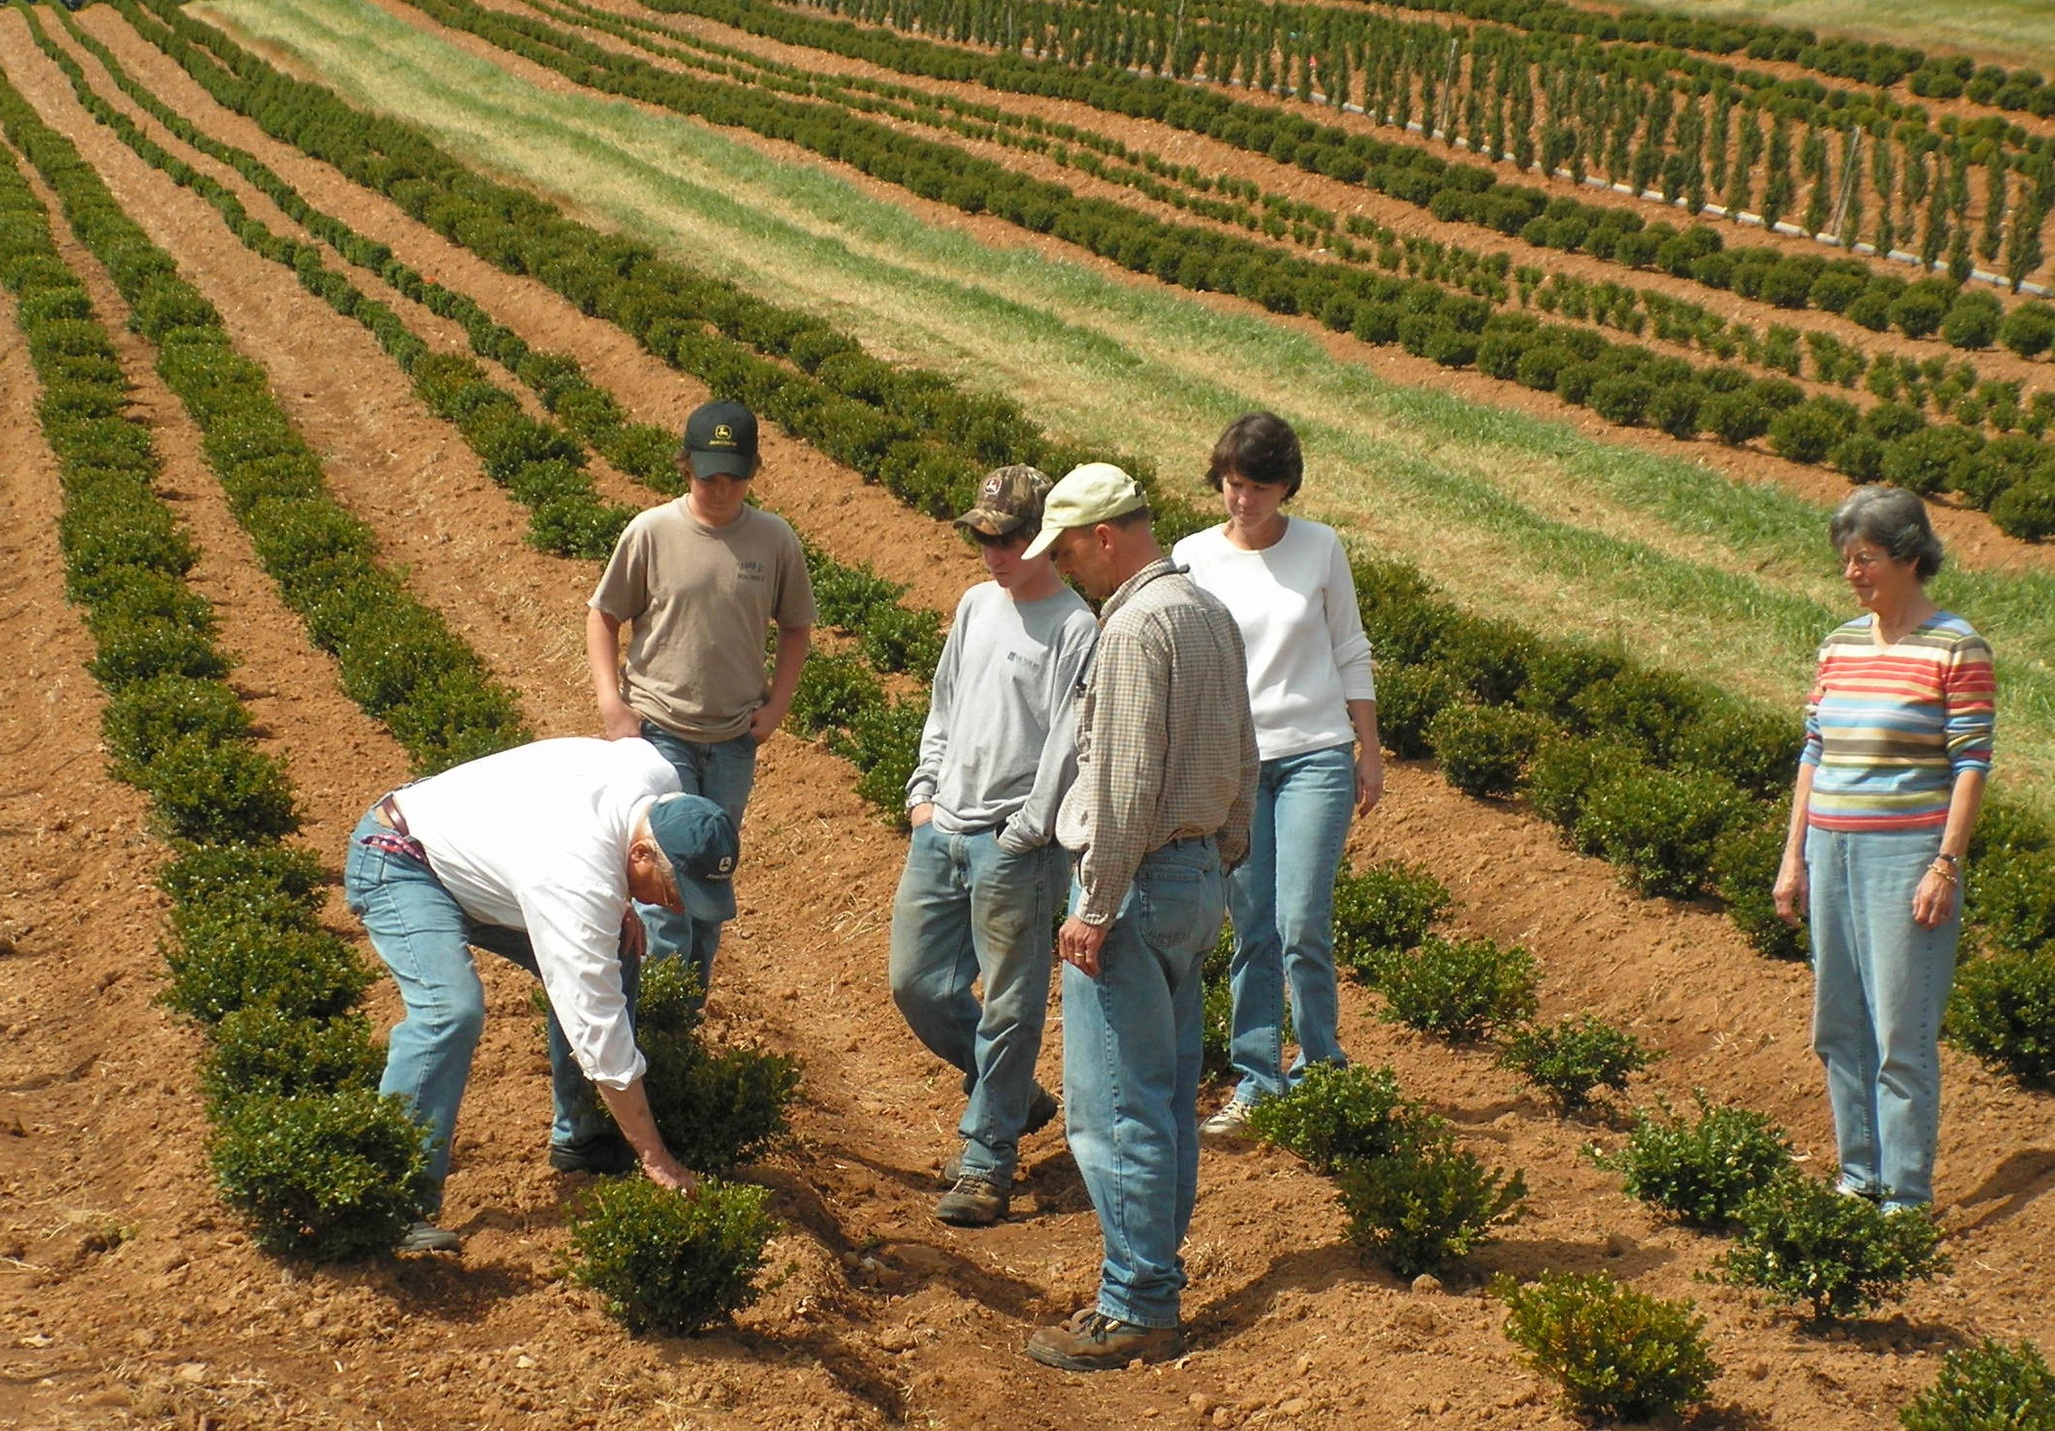 Three generations in the field learning about boxwood. Paul and his grandsons, Tye and Marshall, are joined by their father Bennett, his wife Lynn and Paul's wife Tatum.